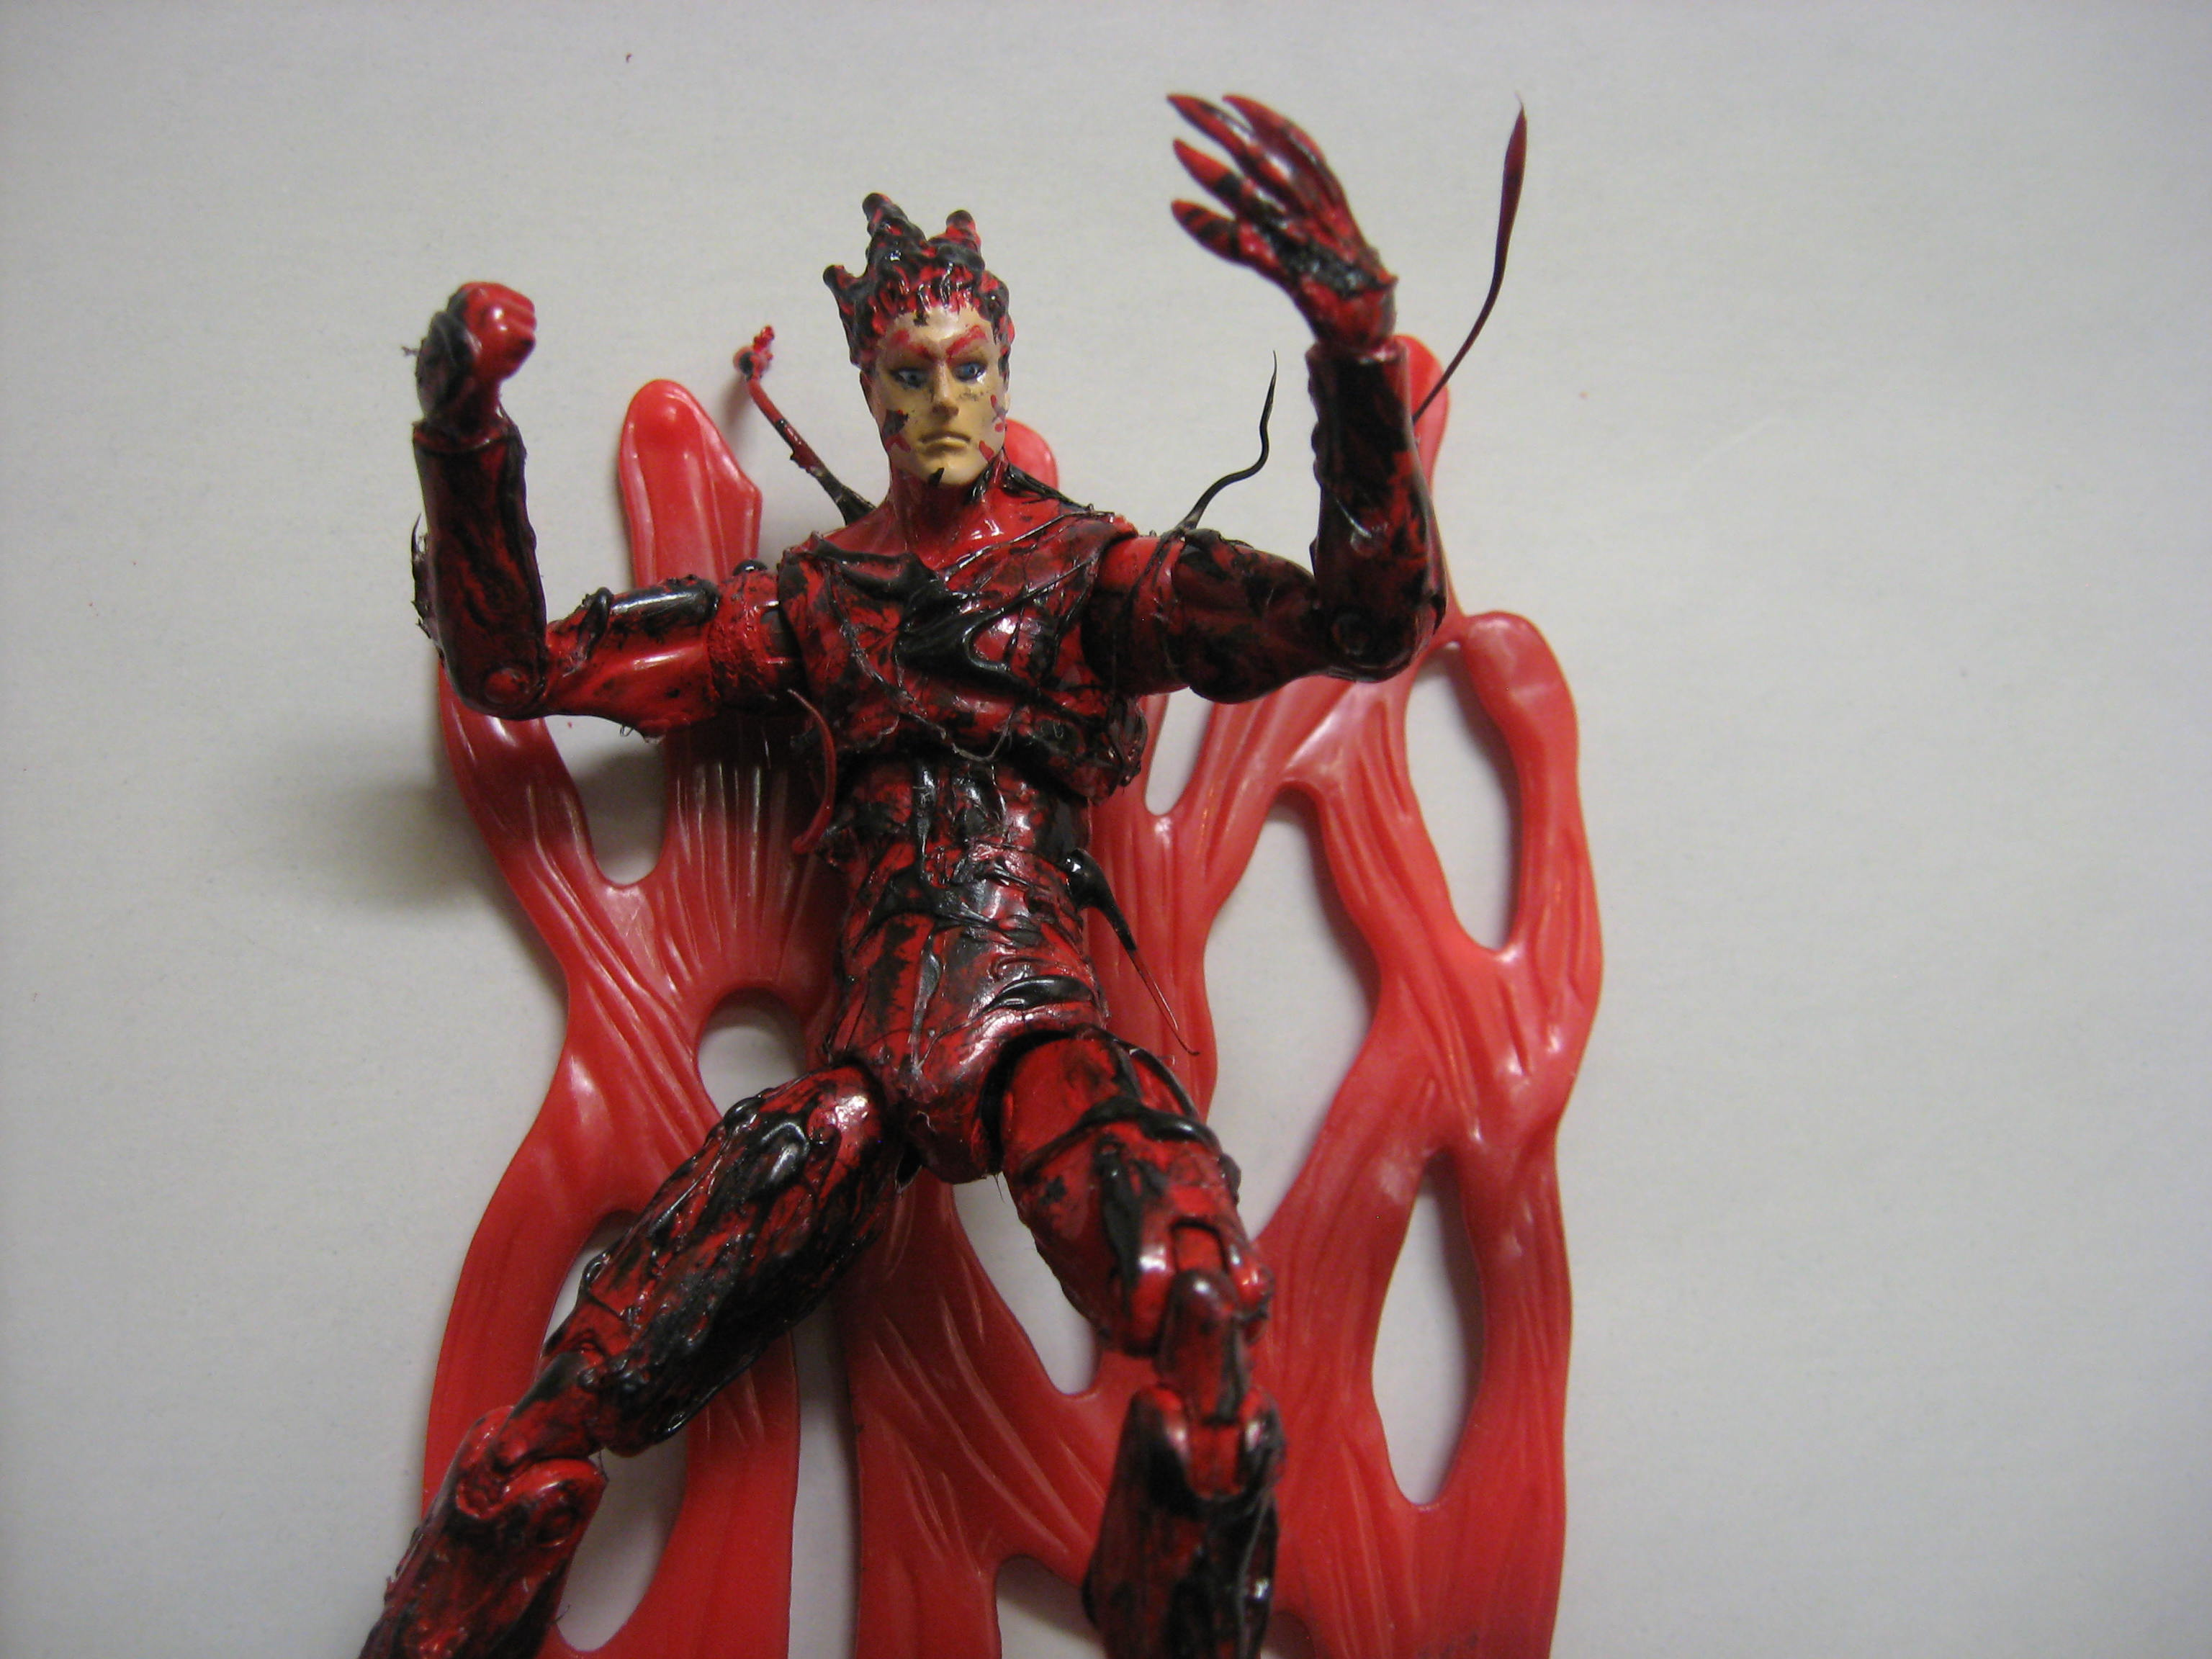 Spiderman Carnage Toy - Viewing Gallery Ultimate Carnage Toy